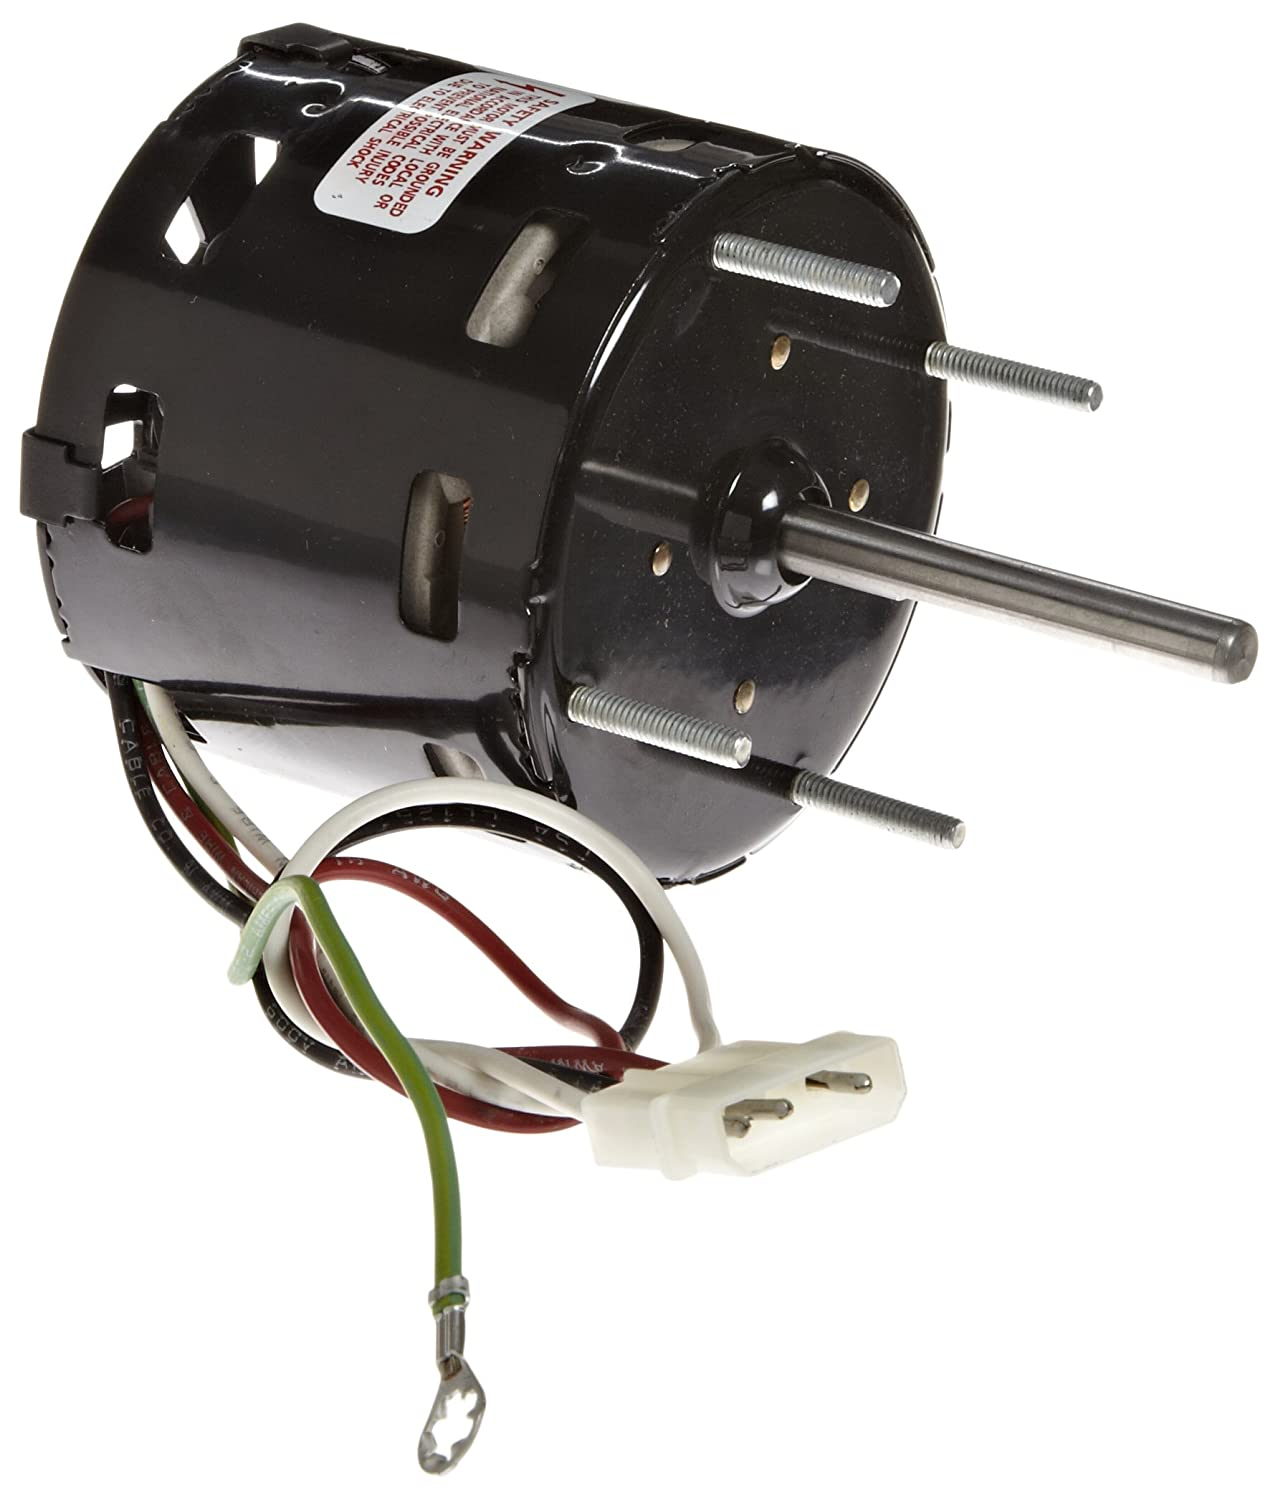 Fasco D1100 3.3' Frame Shaded Pole Loren Cook OEM Replacement Motor with Sleeve Bearing, 1/50HP, 1550/900rpm, 115V, 60 Hz, 1.2/0.7amps Fasco Motors